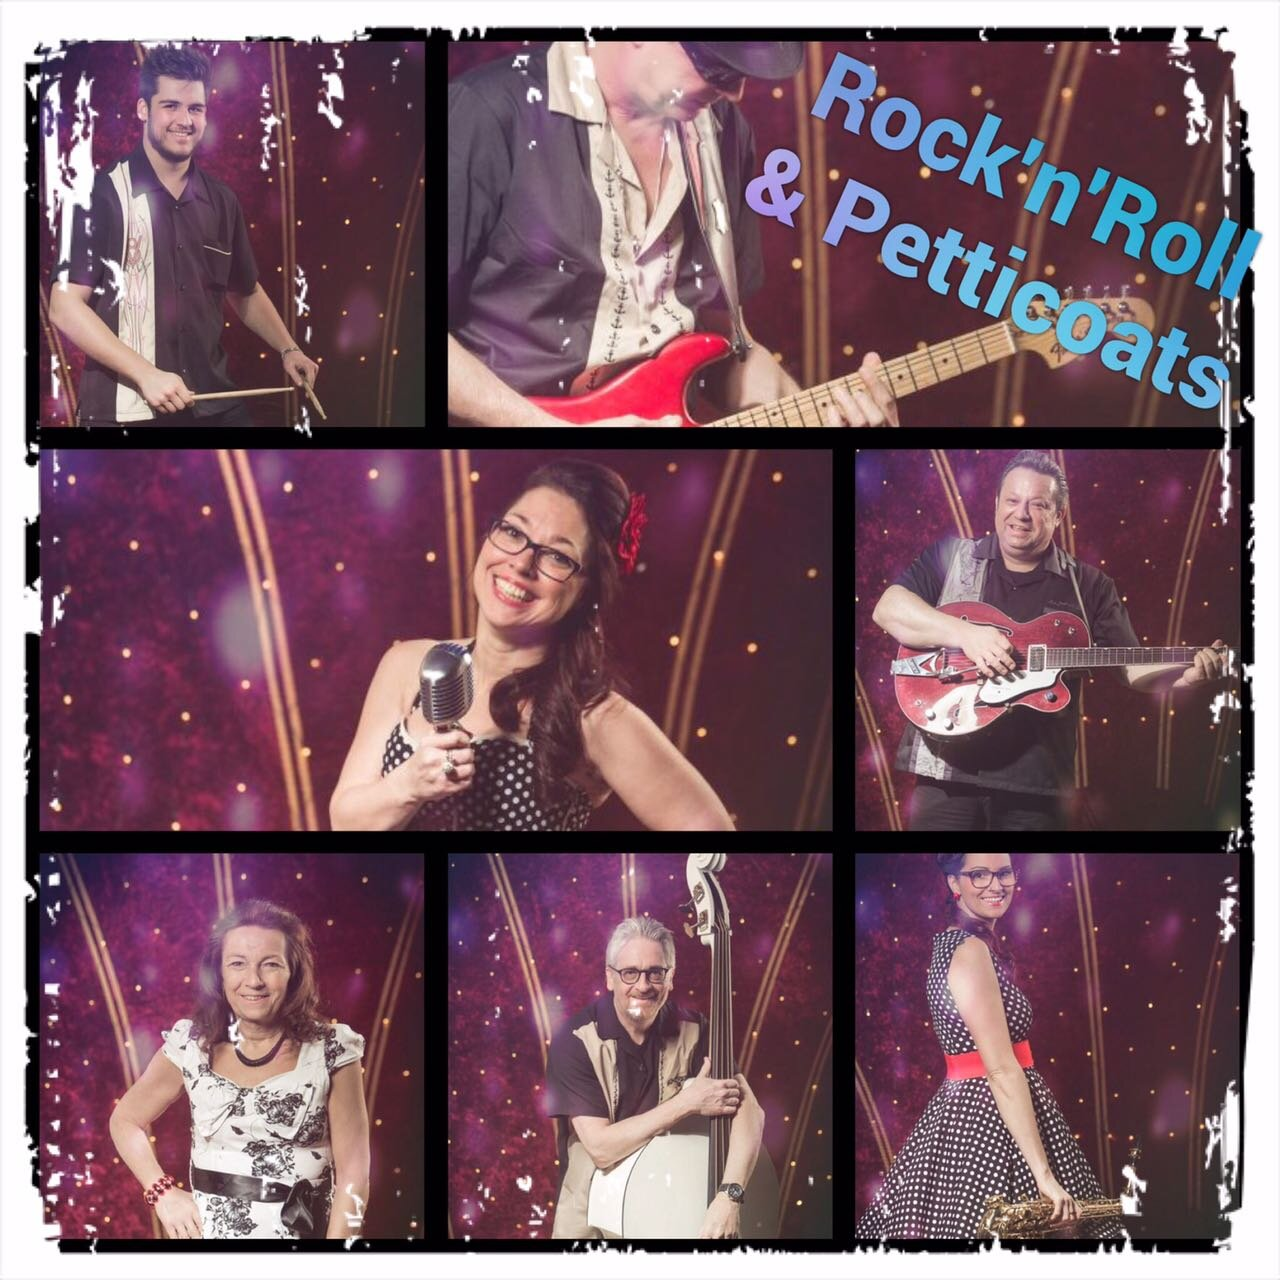 Rock´n´Roll and Petticoats